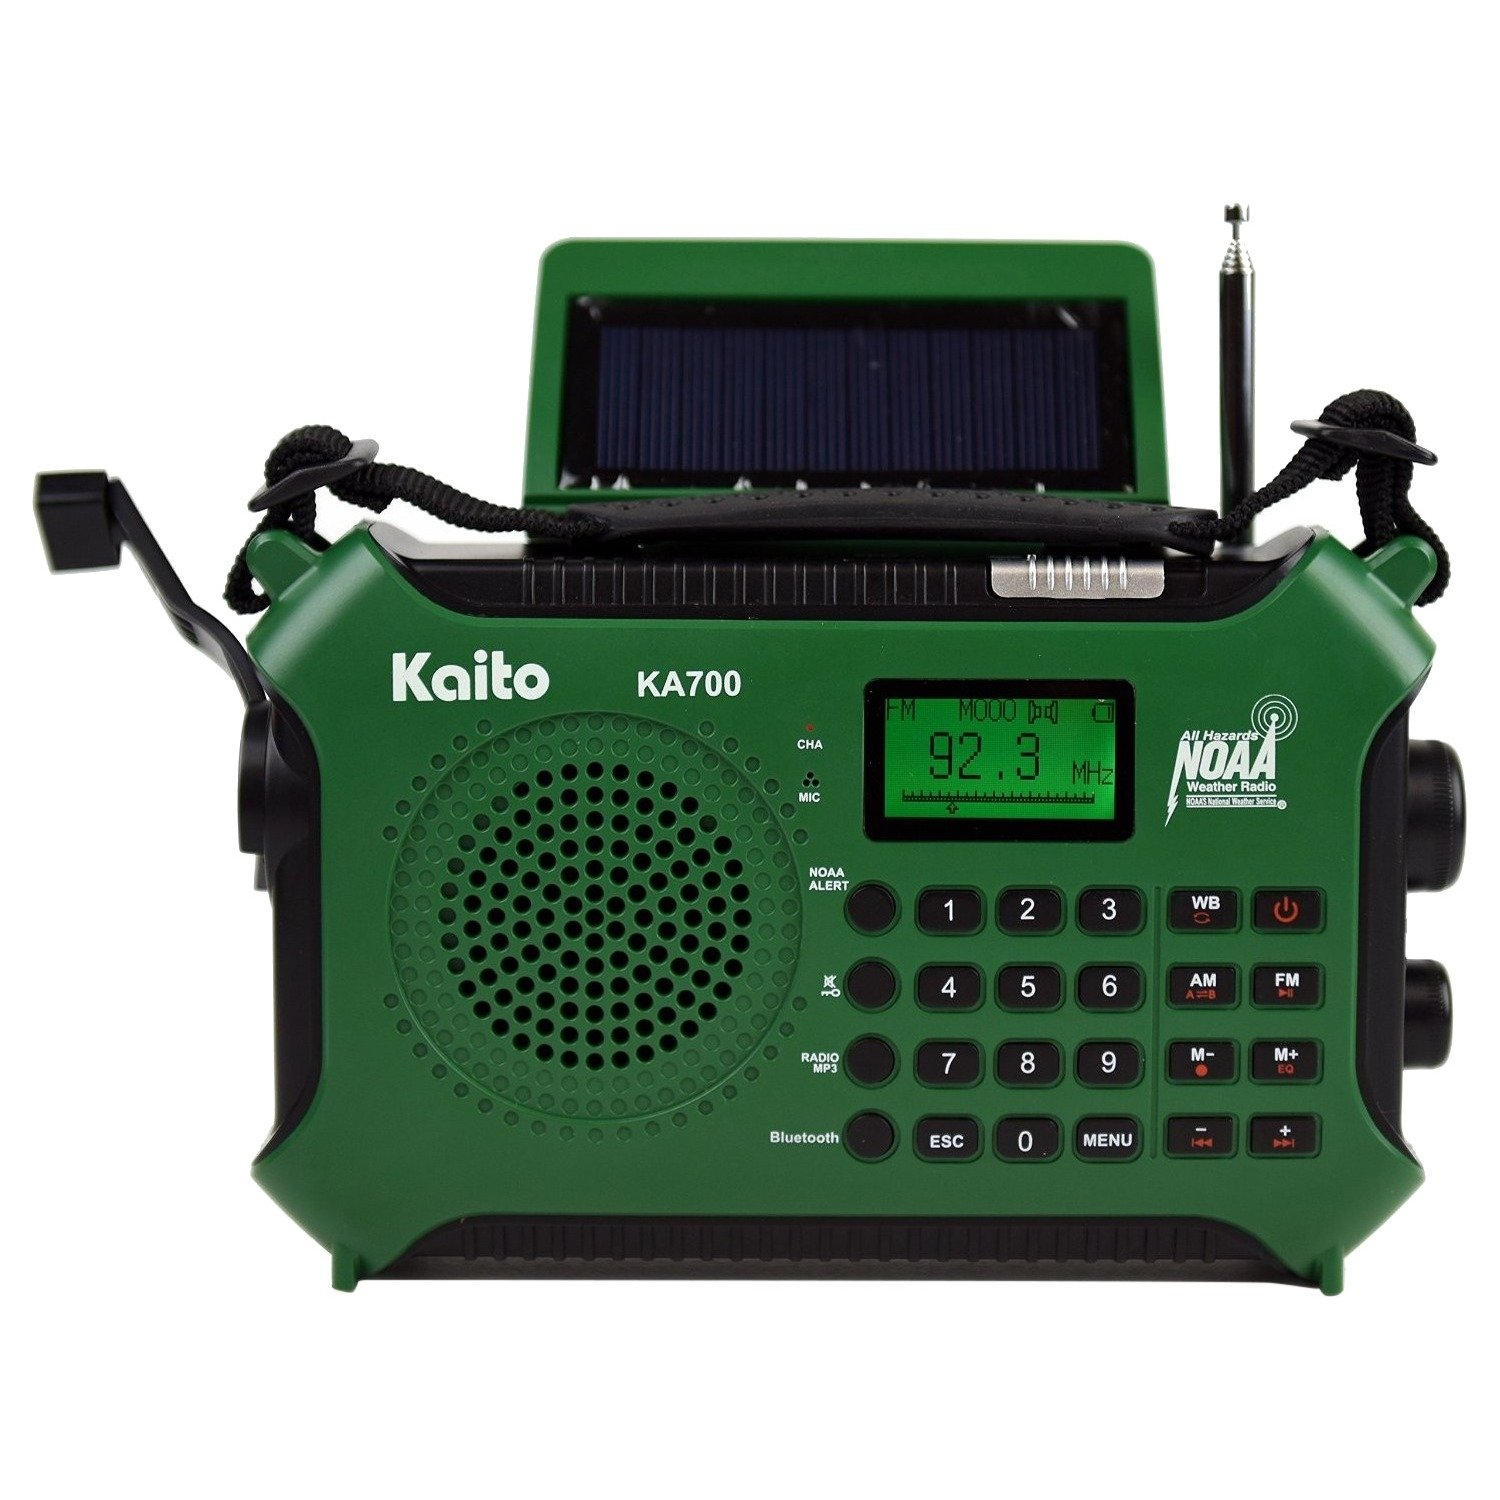 Kaito Solar Crnk BT AM FM WB SW NOAA by Kaito